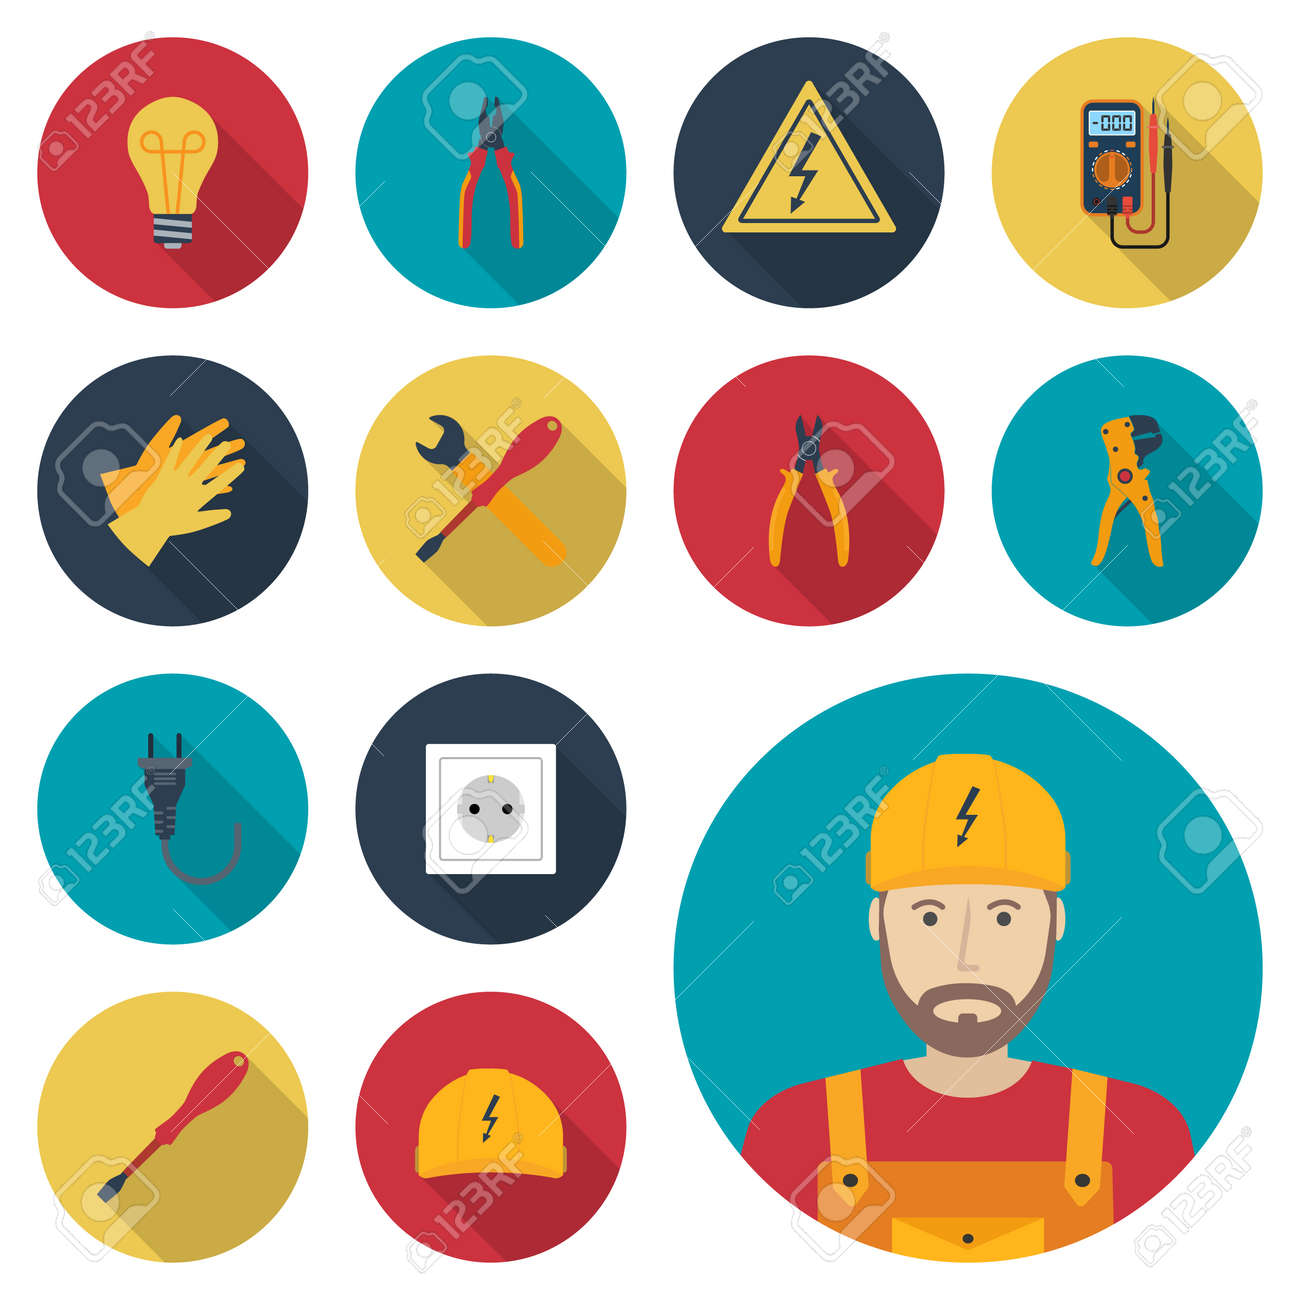 Electricity set icon flat. Icons electric tools, equipments and maintenance. Signs of work safety. Colored icons isolated with shadow. Avatar electrician. Vector illustration, flat design. - 54110734